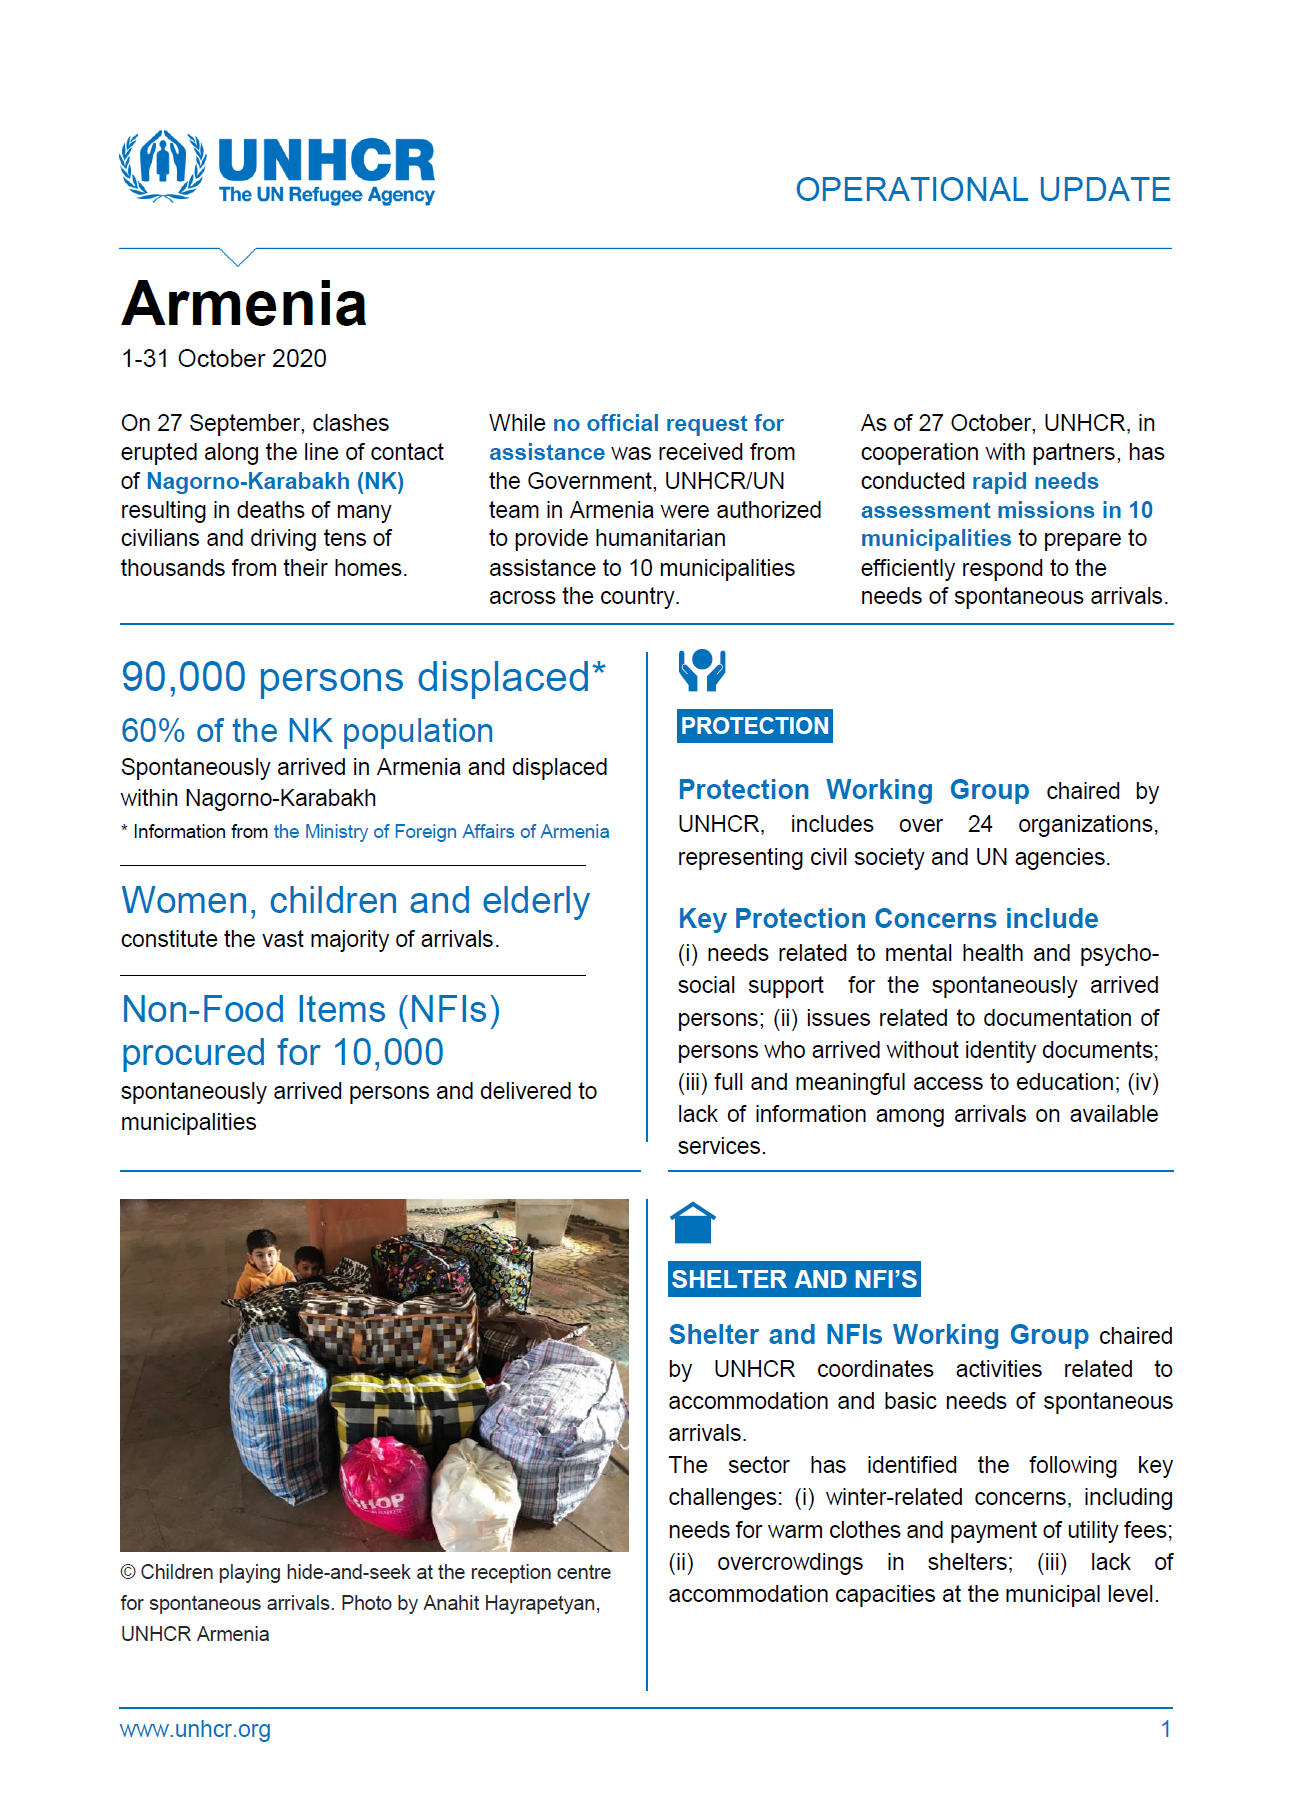 UNHCR Armenia Operational Update's cover page for October 2020.